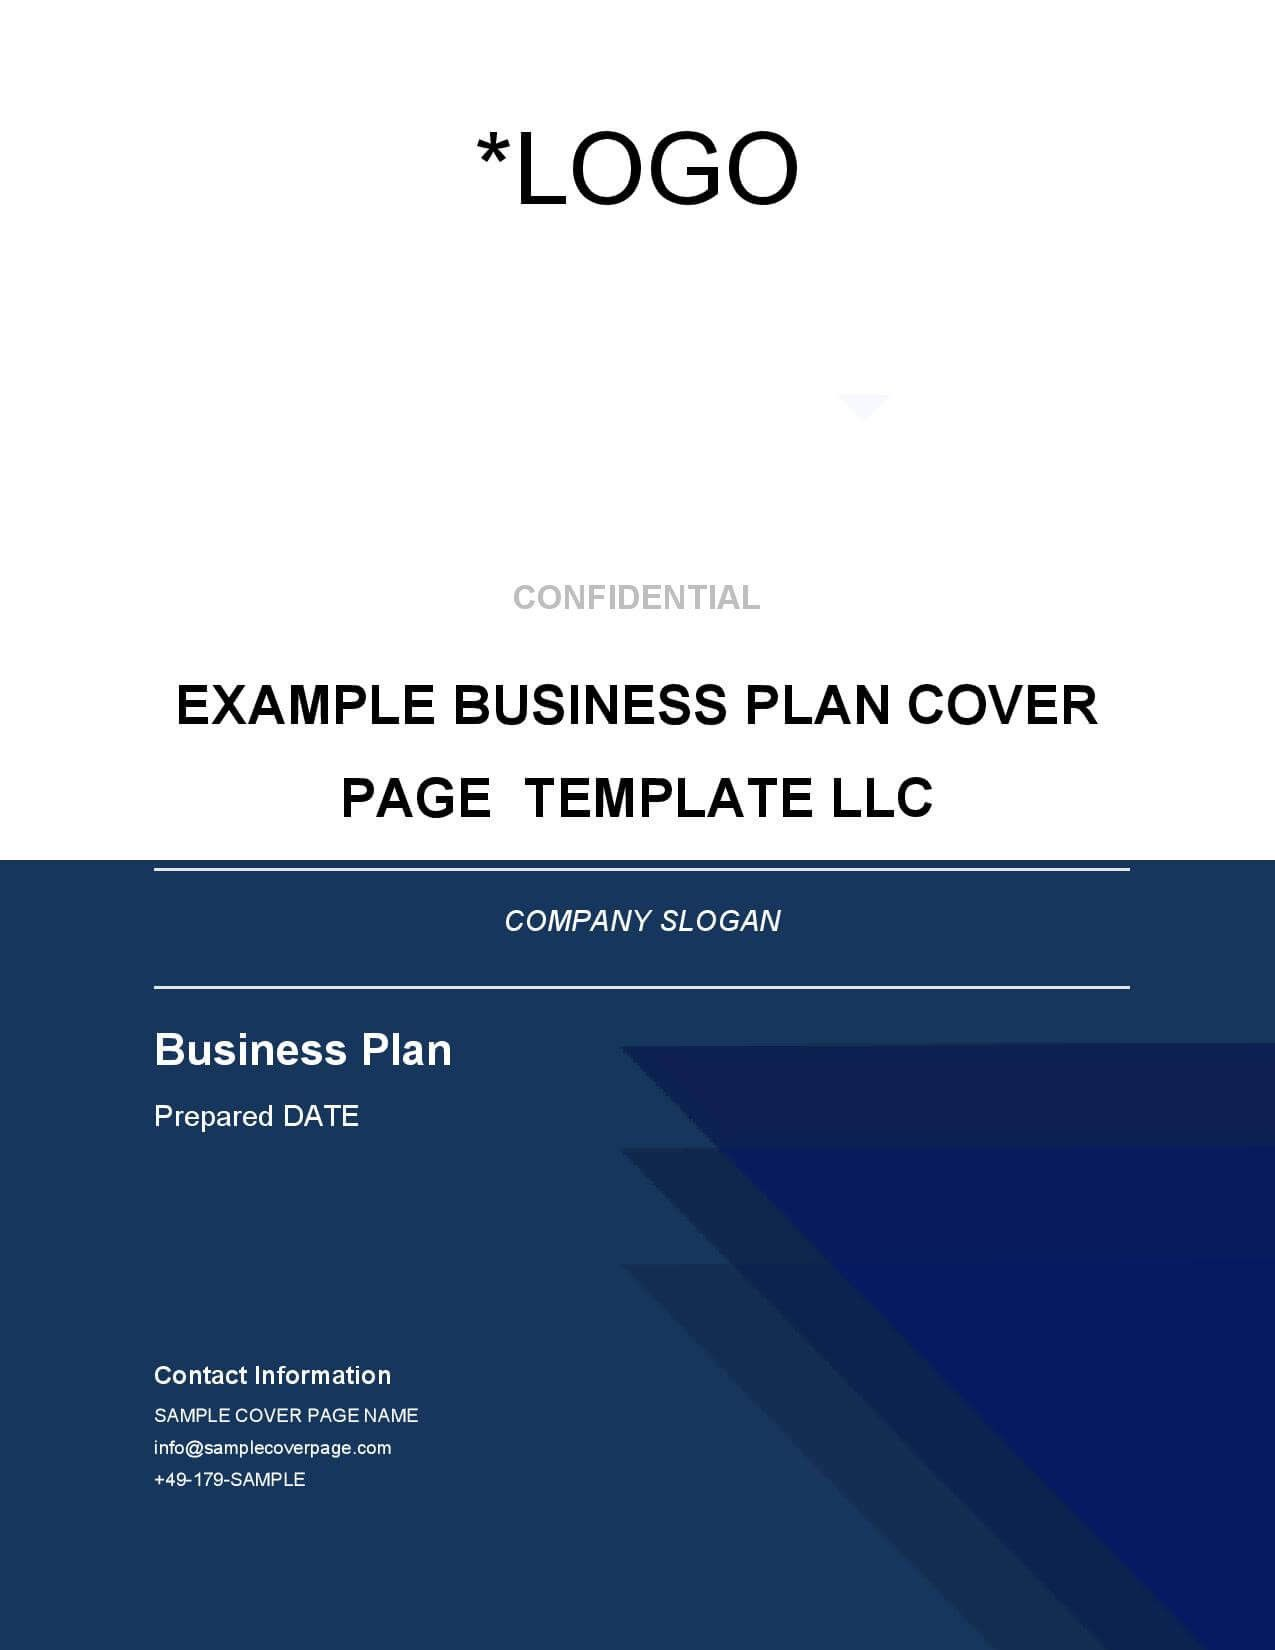 Business Plan Cover Page Template Unique Business Plan